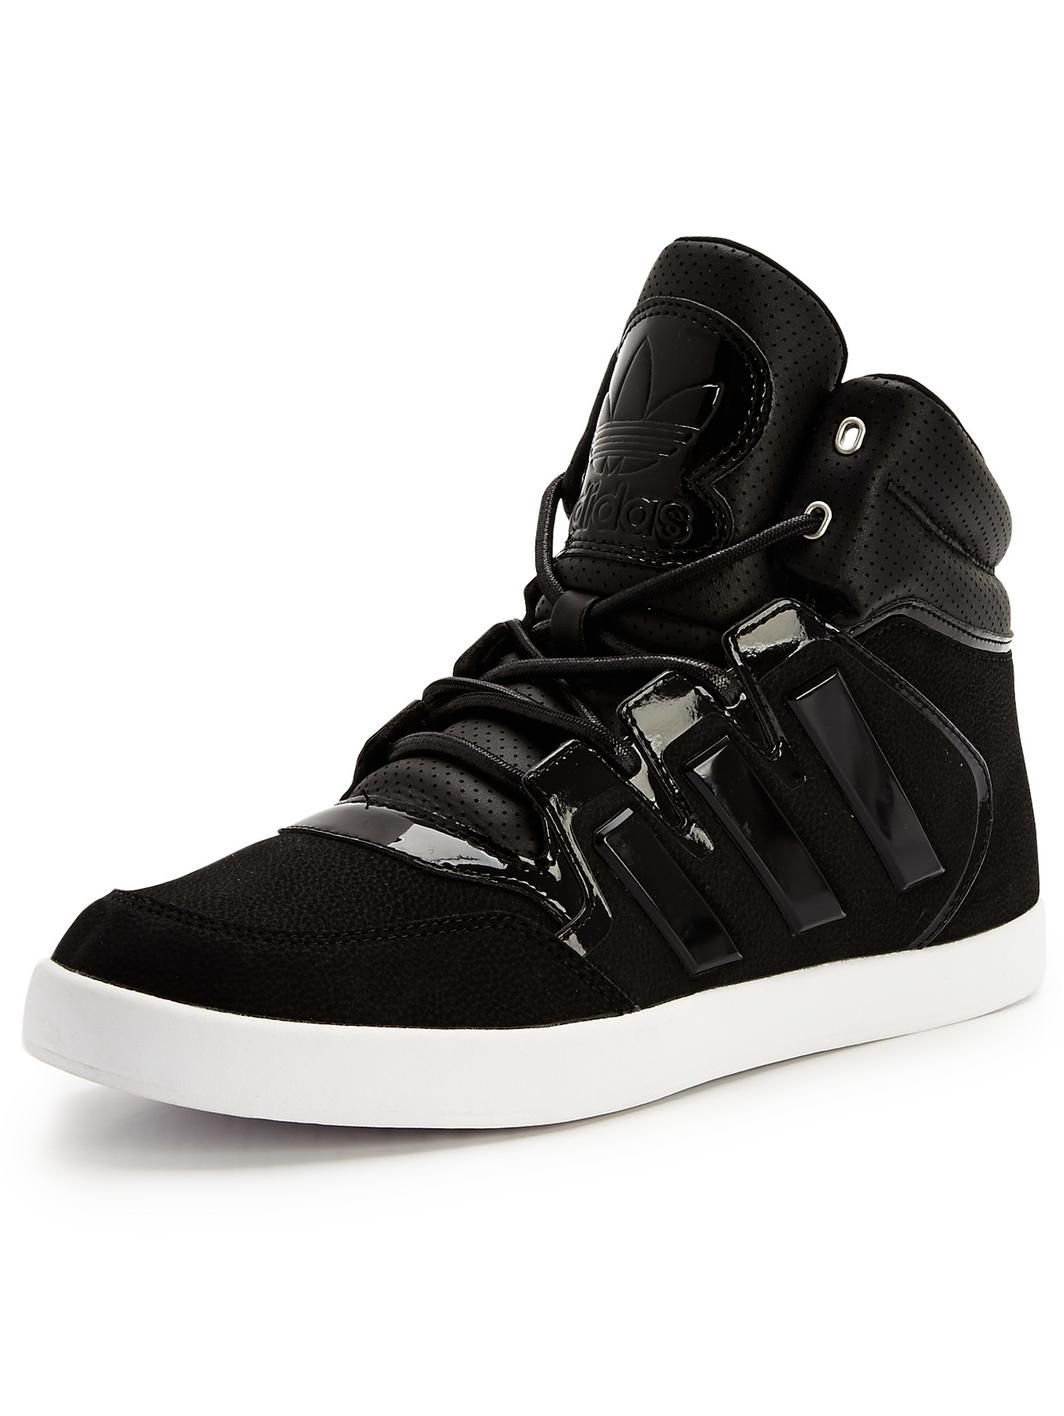 Dropstep Mens Trainers, http://www.very.co.uk/